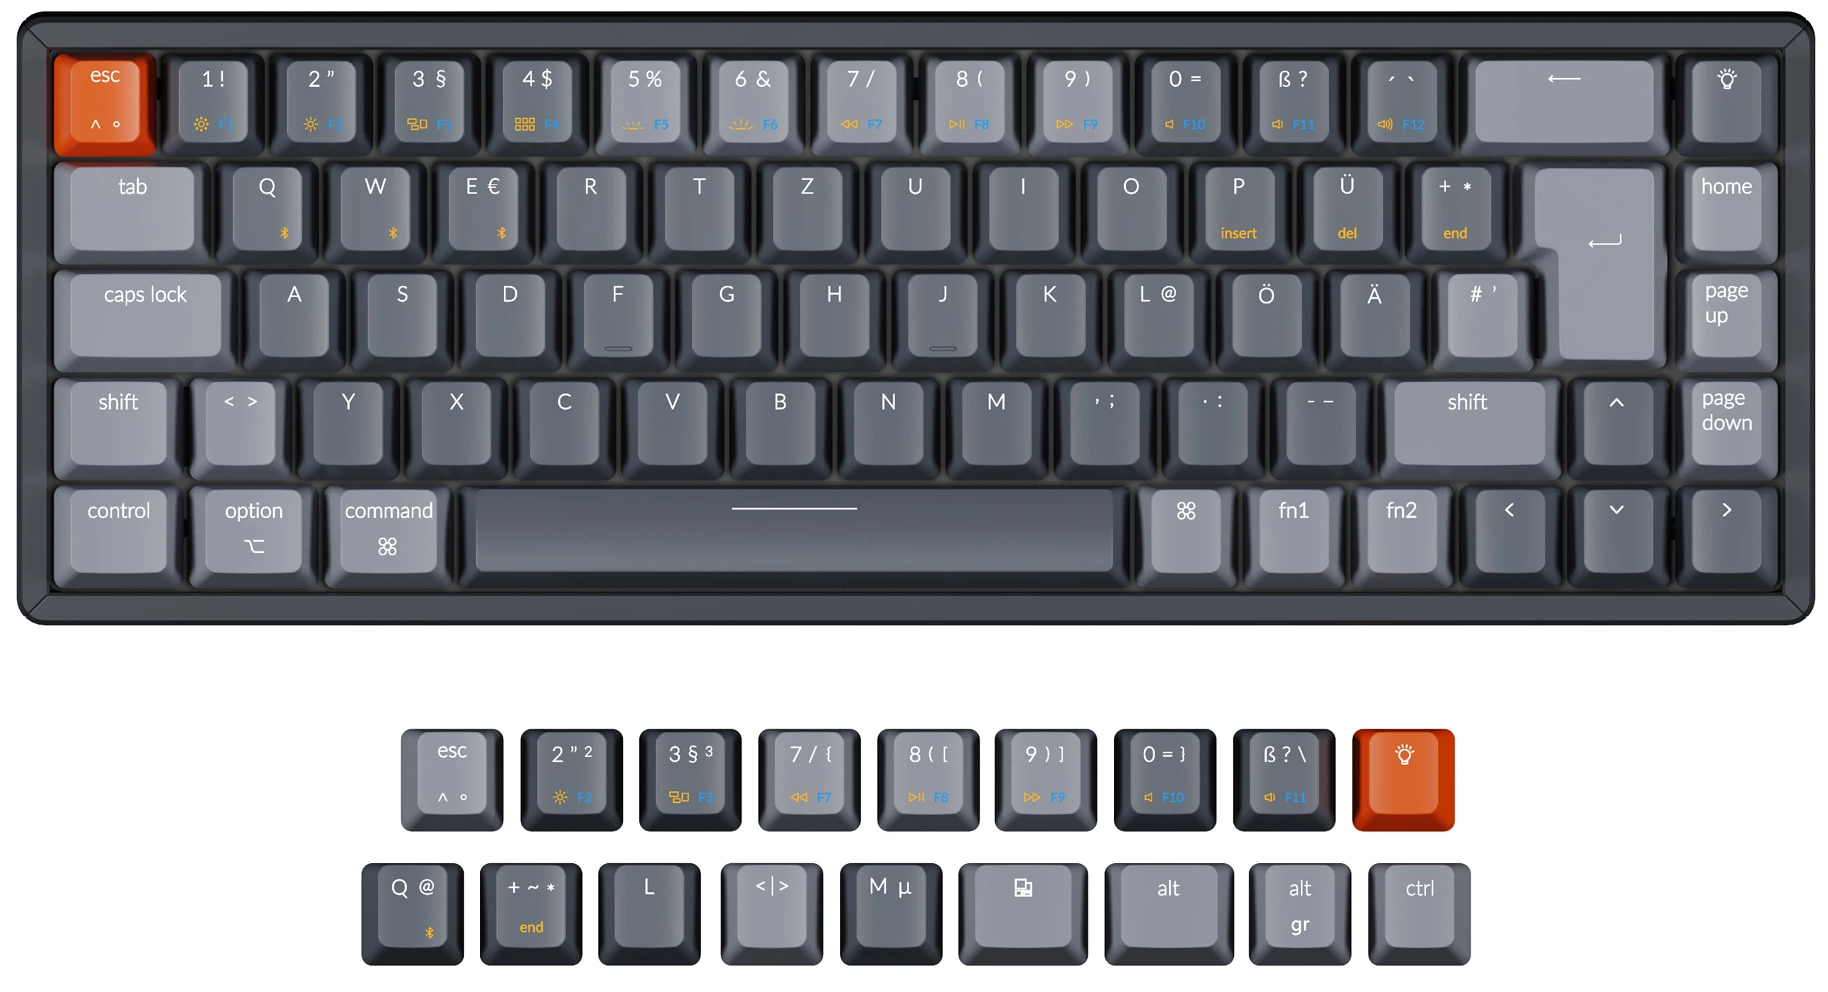 Keychron K6 65 percent compact wireless mechanical keyboard for Mac Windows German ISO-DE Layout Gateron mechanical LK optical switch and hot-swappable with RGB backlight aluminum frame with macOS keycaps installed